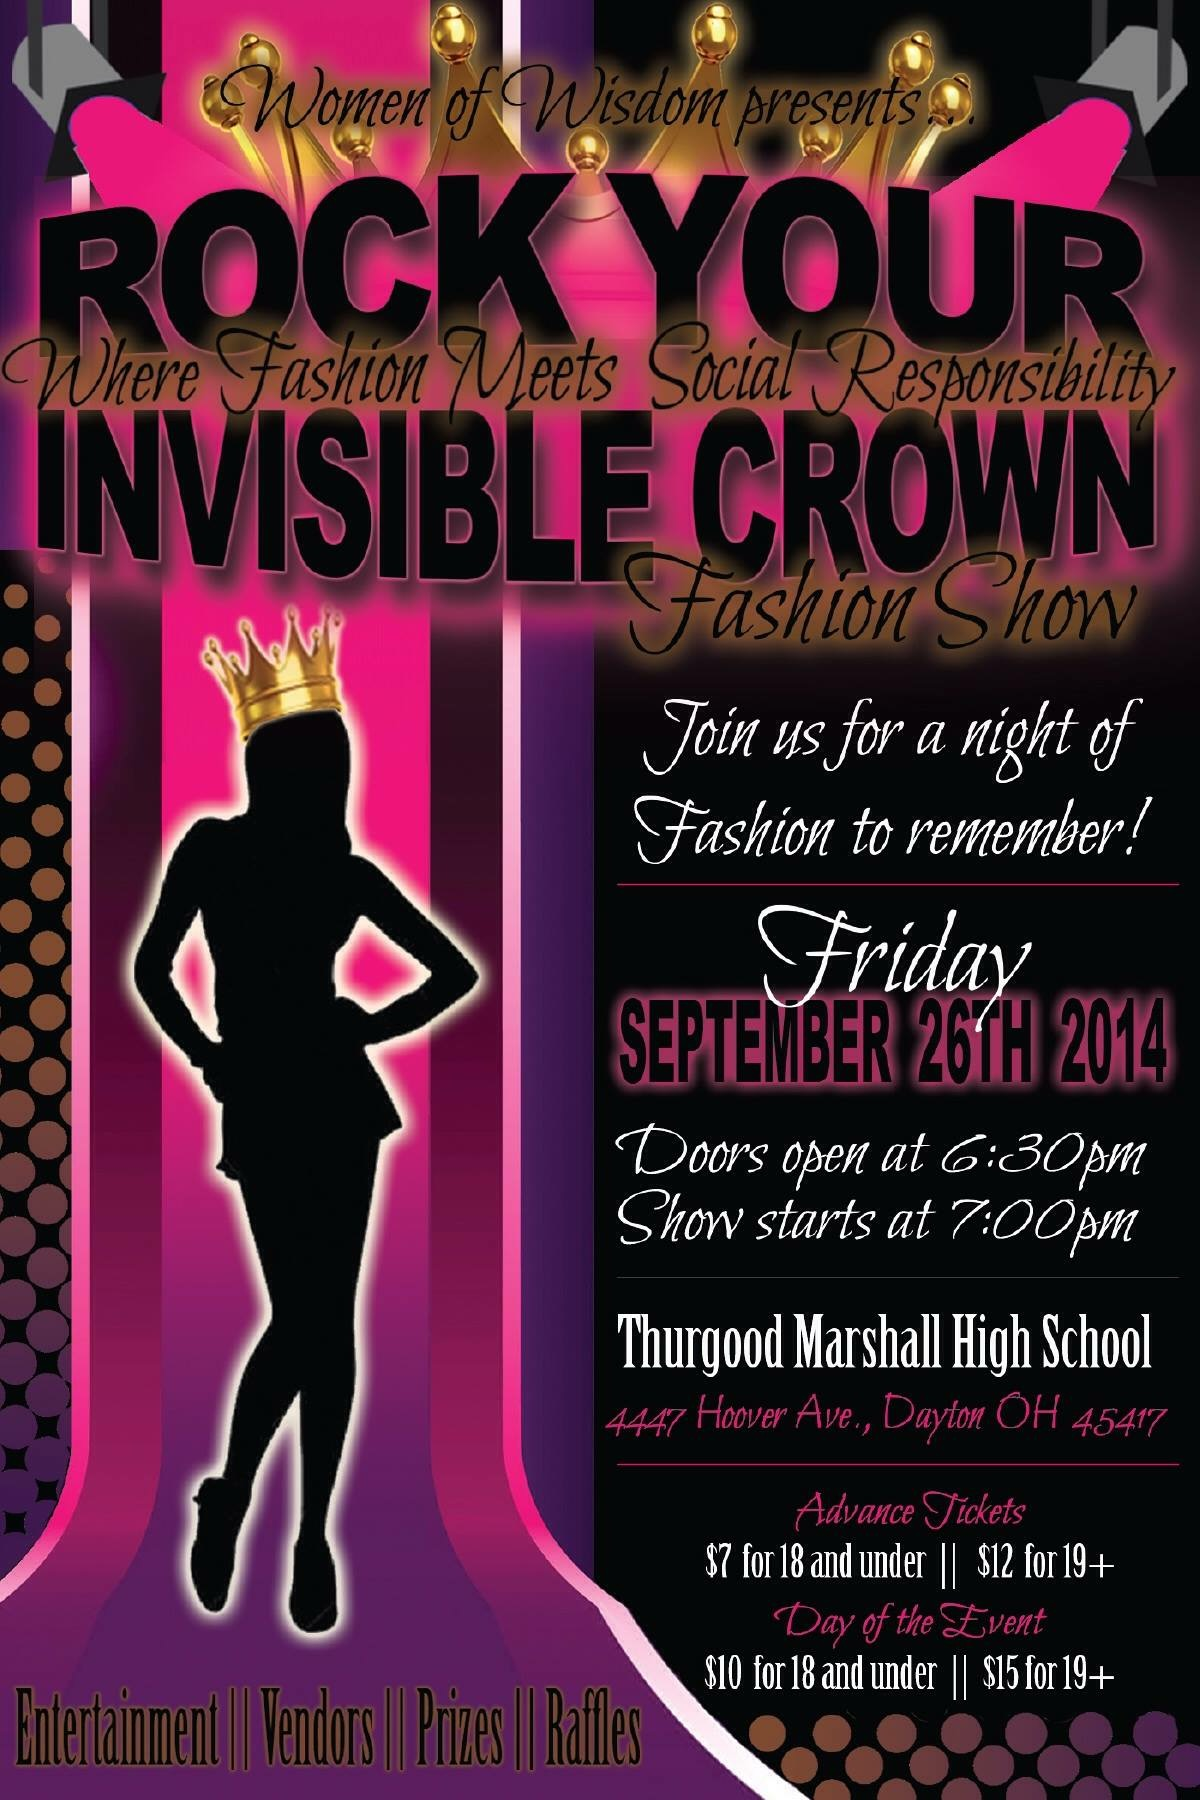 Rock Your Invisible Crown